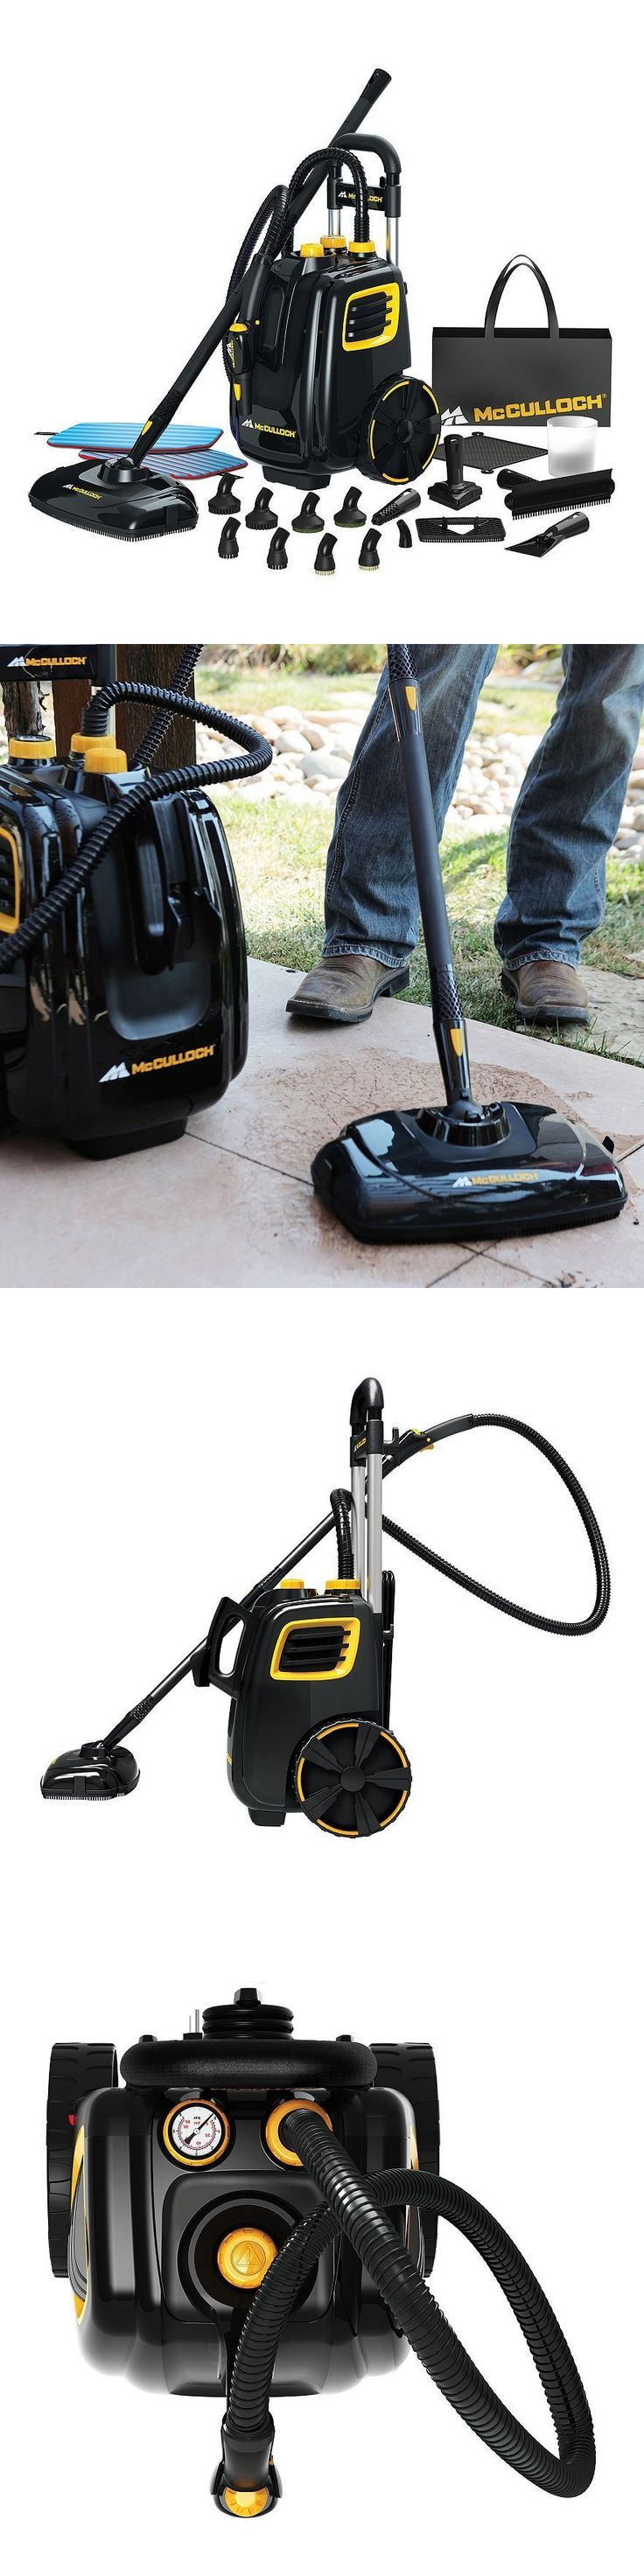 Carpet Steamers 79656: Brand New In Box Steam Cleaner Mcculloch Mc1385 With Pads Accessories Warranty -> BUY IT NOW ONLY: $183.91 on eBay!